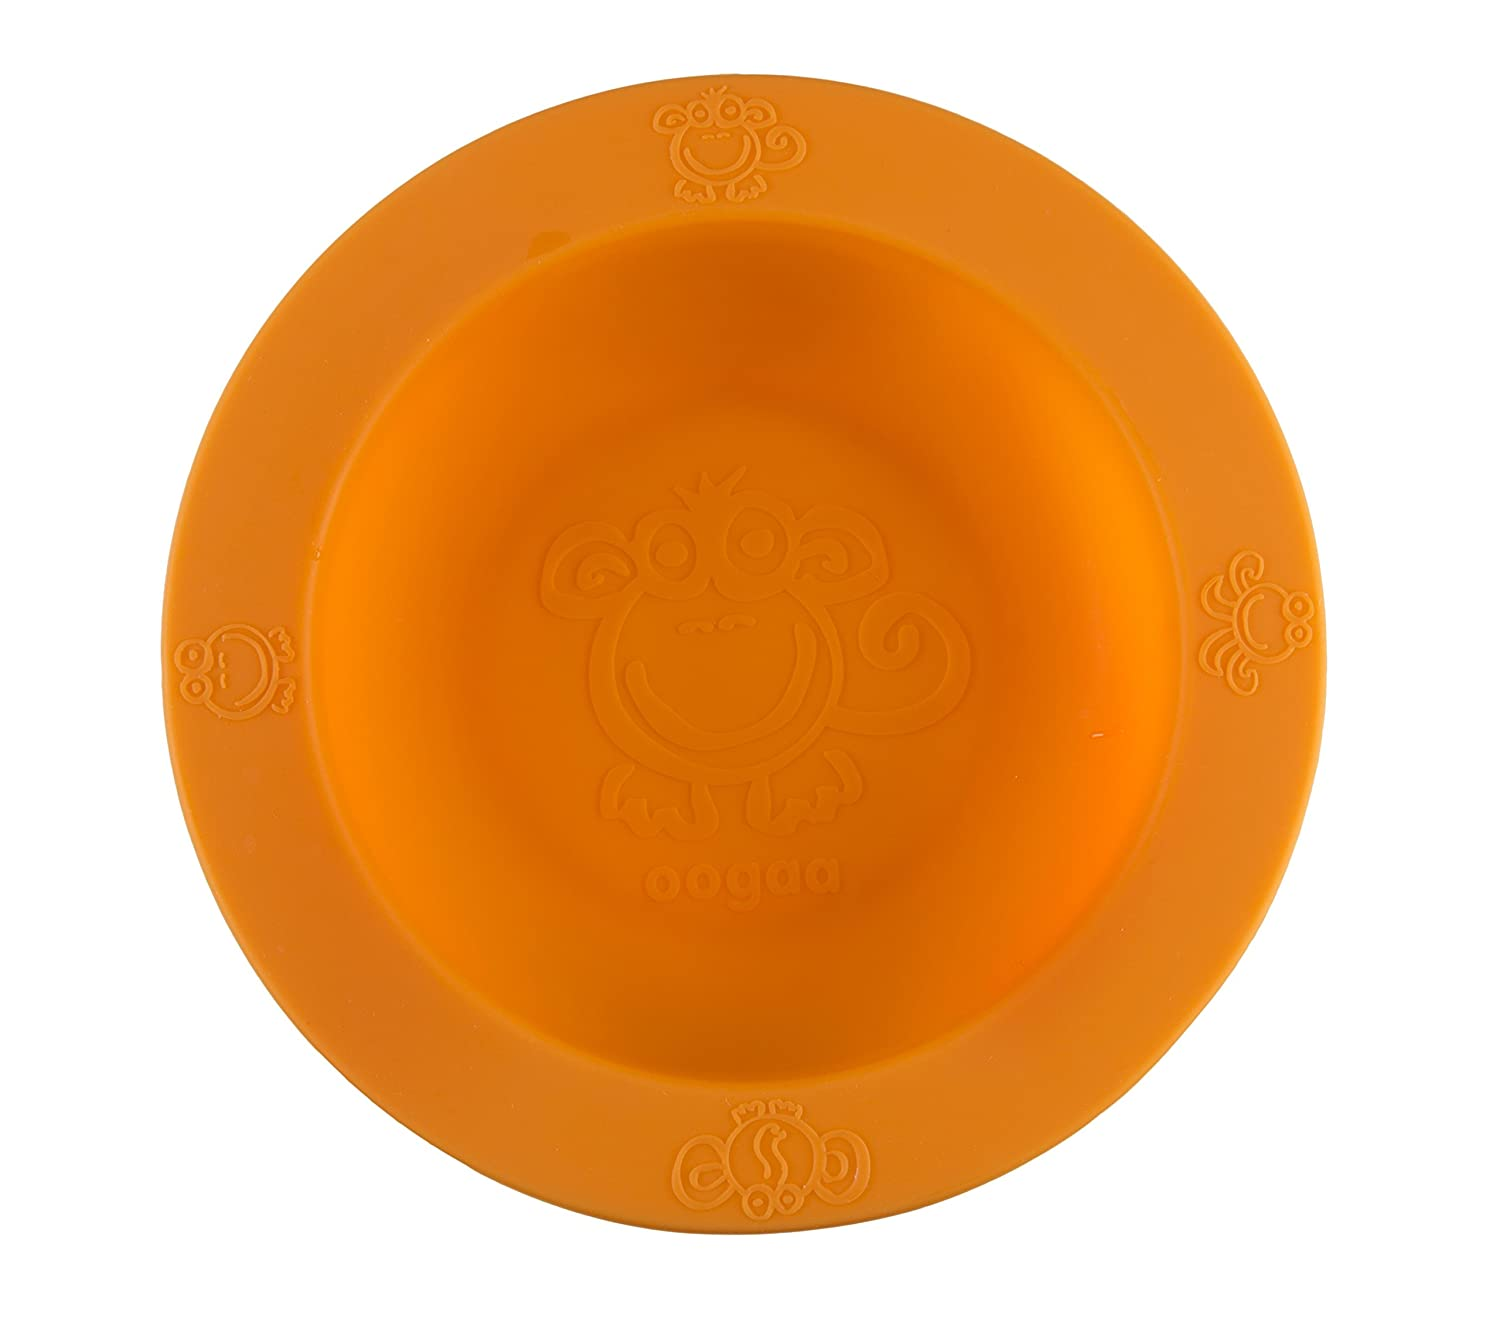 100% Silicone Bowl. Non-Toxic, Oven Safe! Baby's First Bowl, Orange